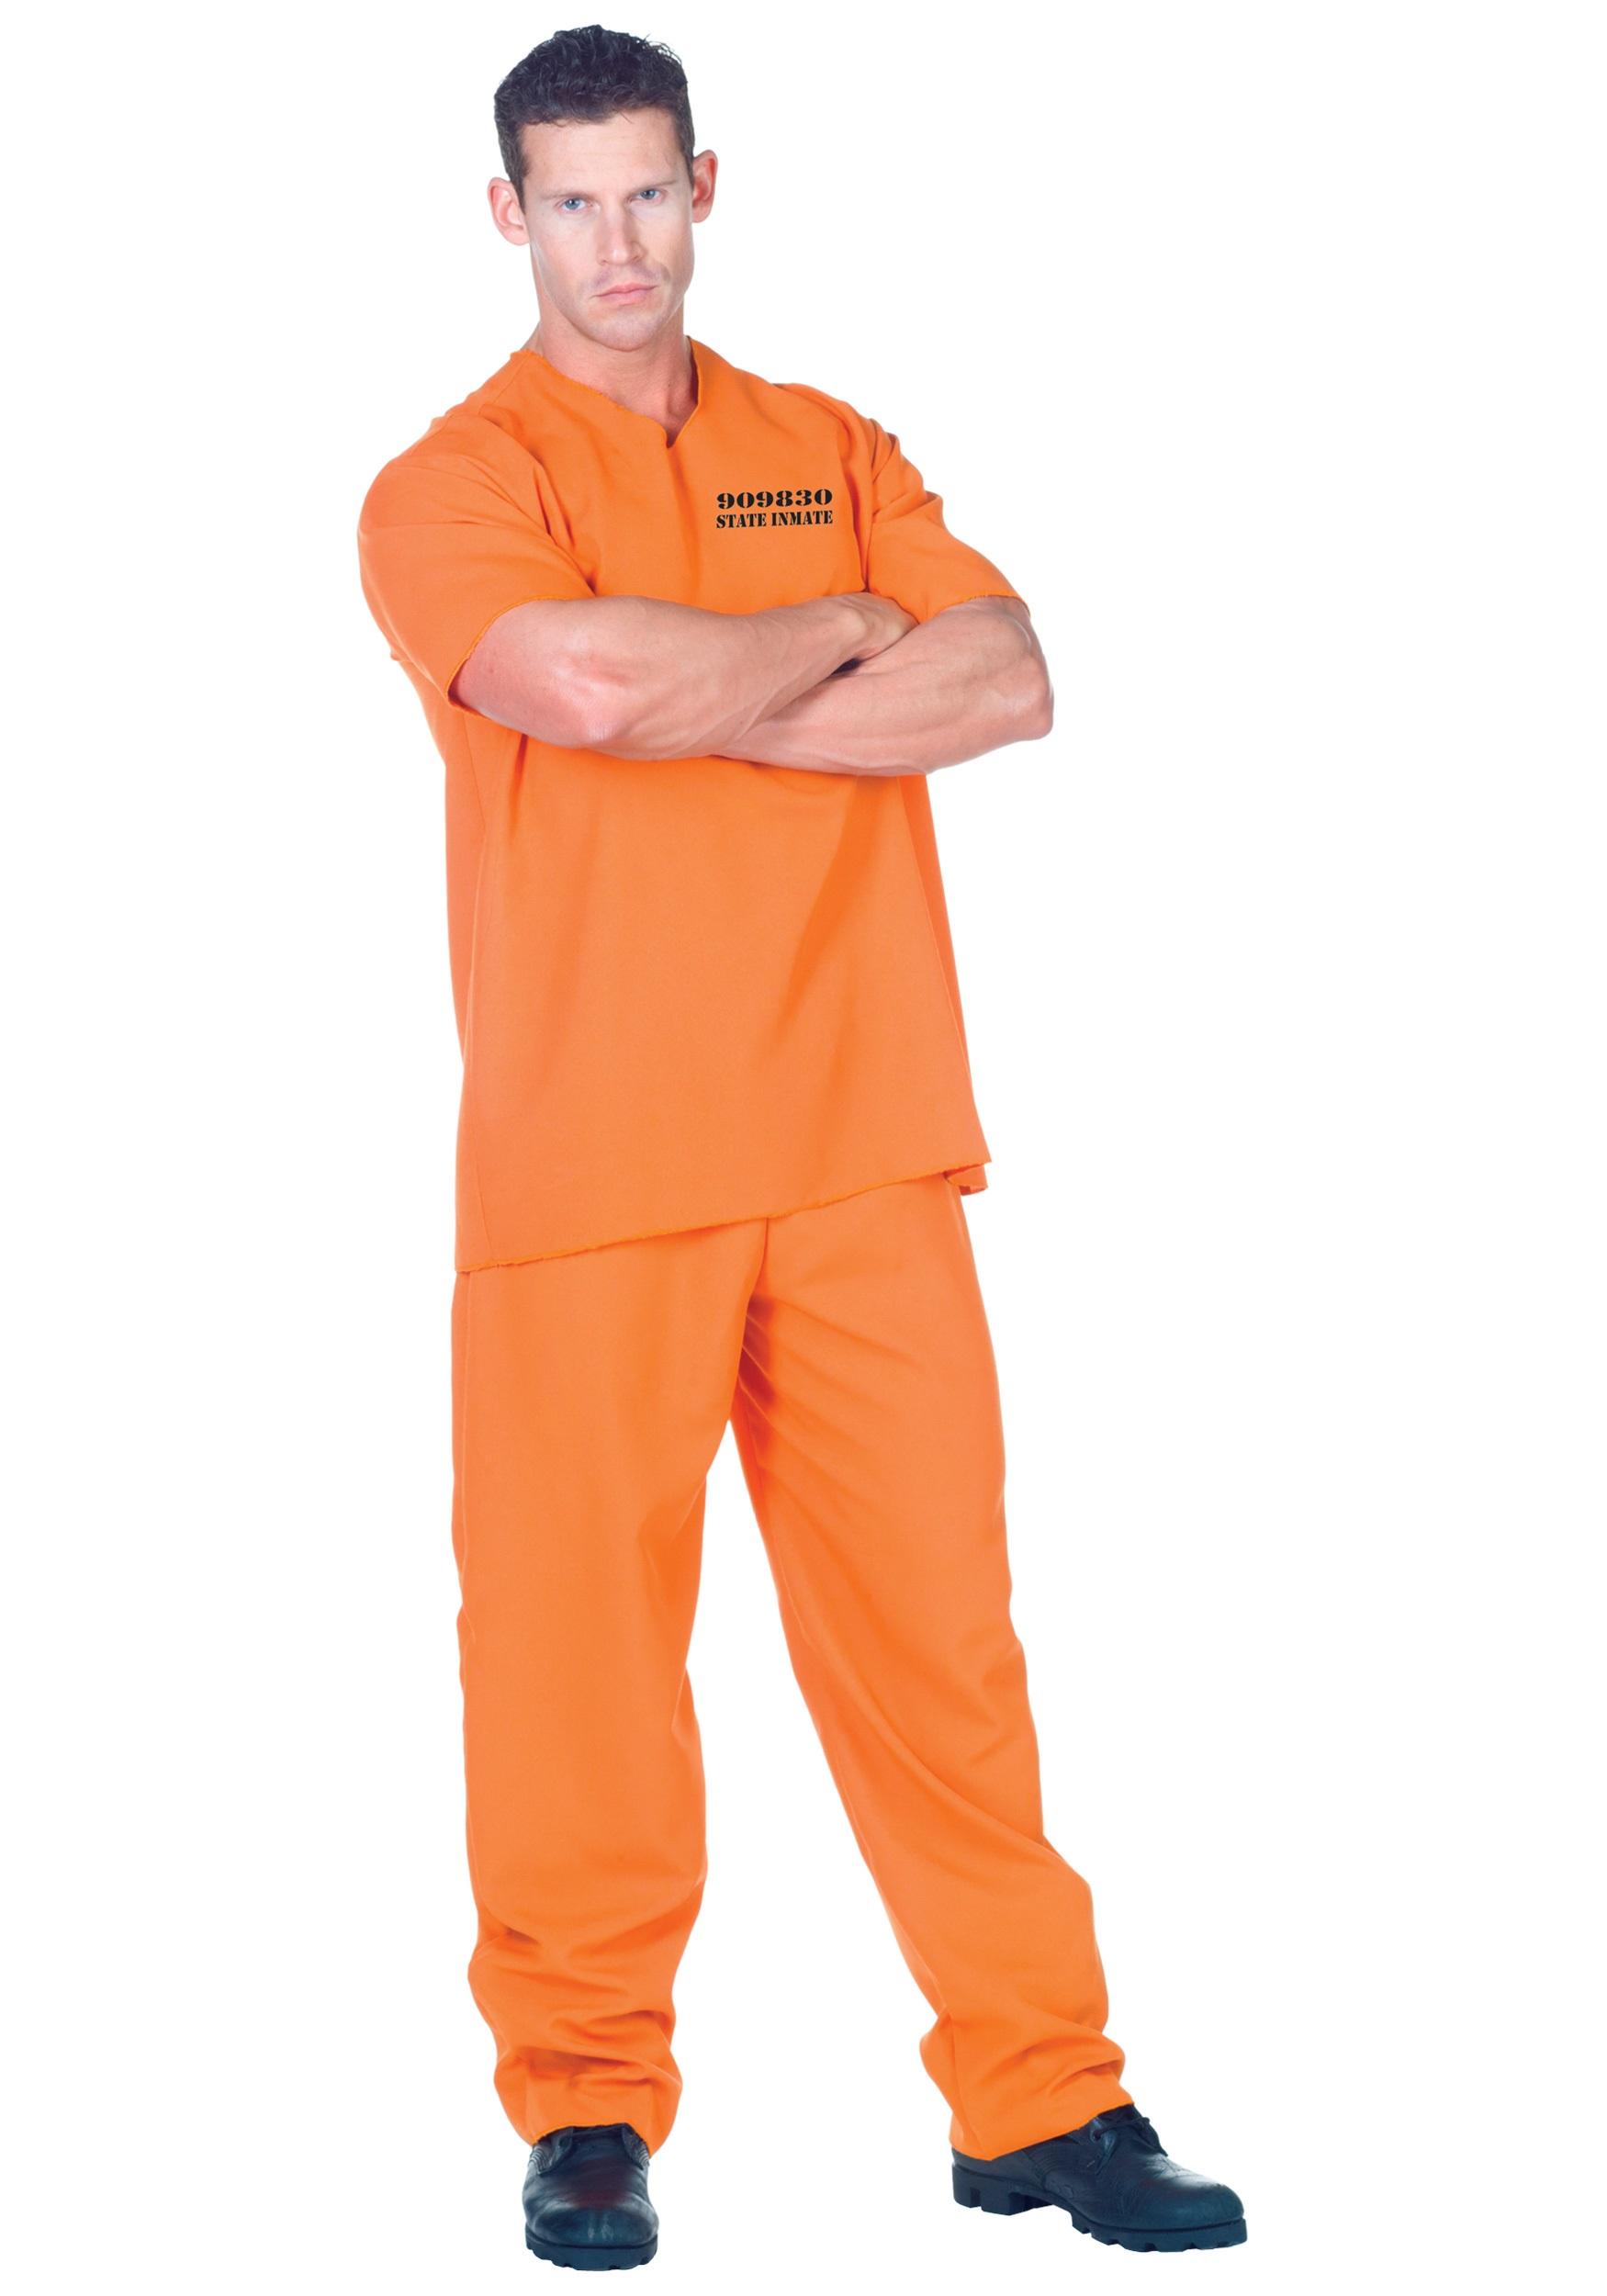 Orange Jumpsuit Inmate Costume - Adult Prisoner Uniform Costume Ideas